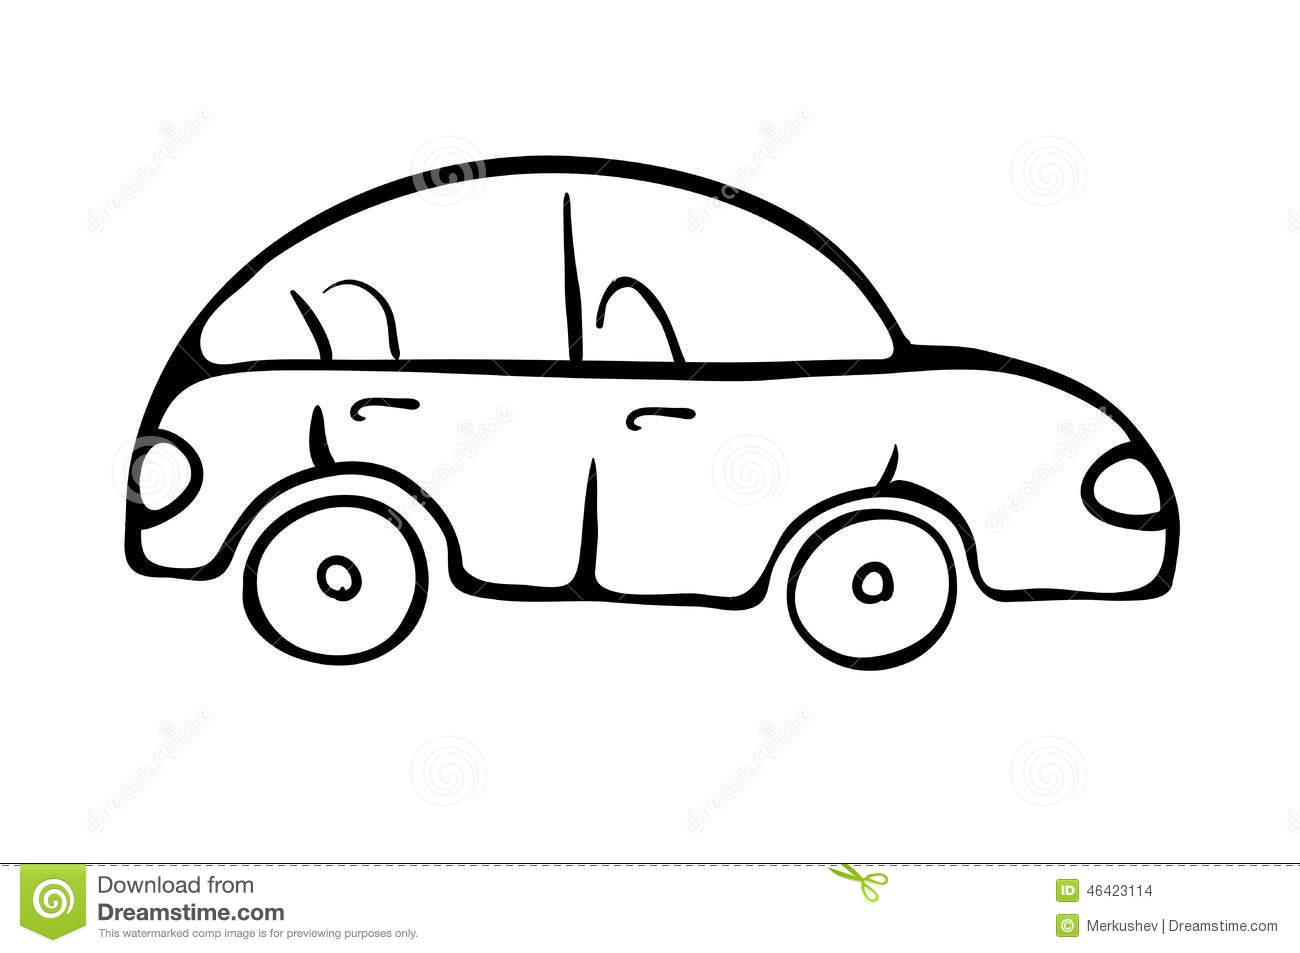 Wiring Harness Clipart Air Filter Clipart Wiring Diagram